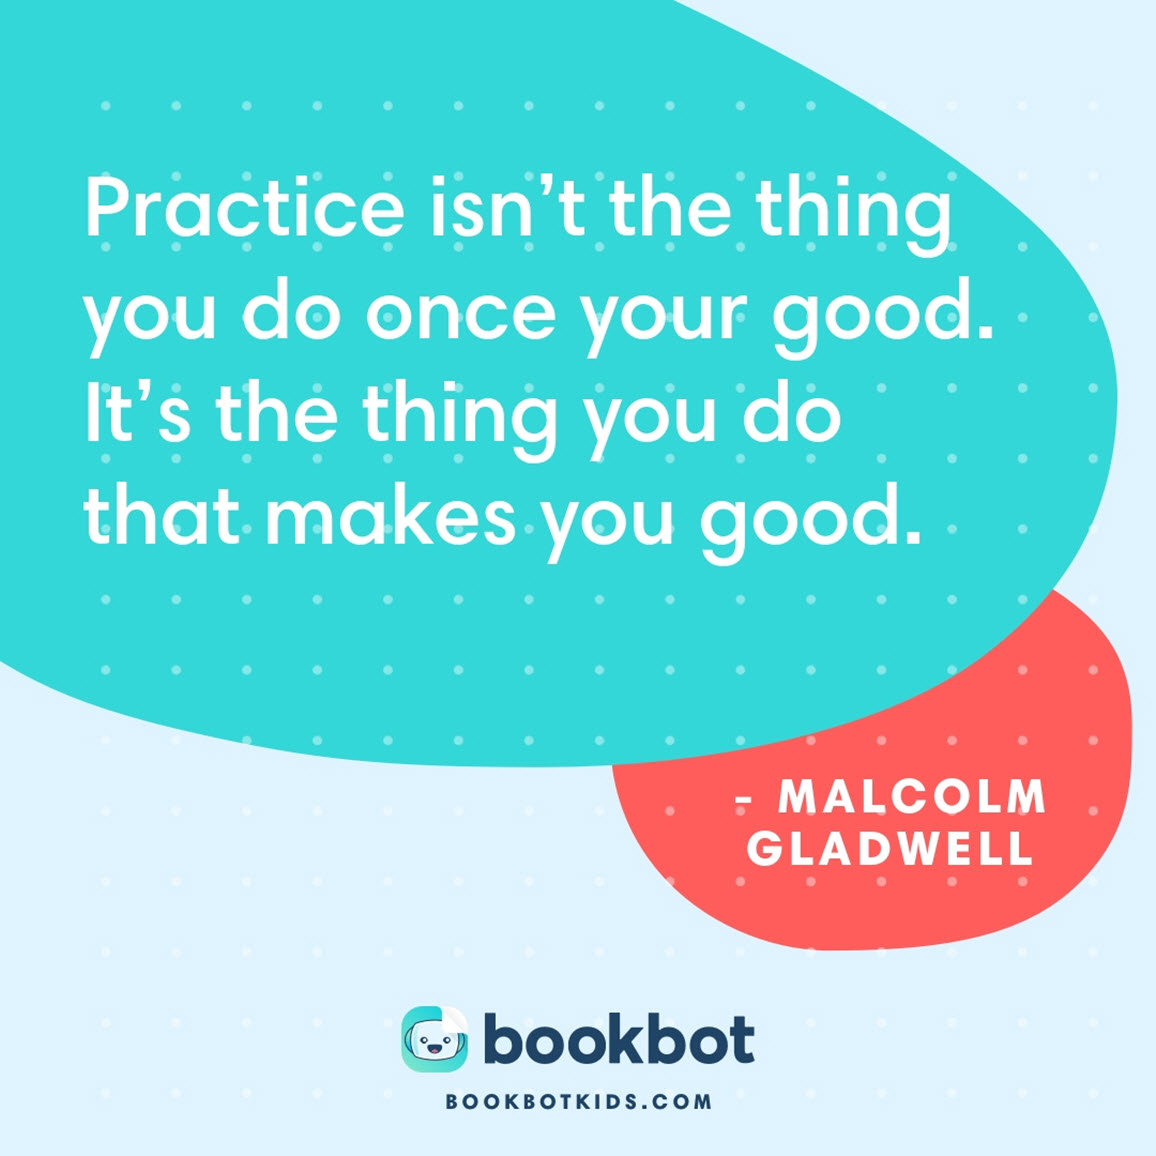 Practice isn't the thing you do once your good.  It's the thing you do that makes you good. – Malcolm Gladwell